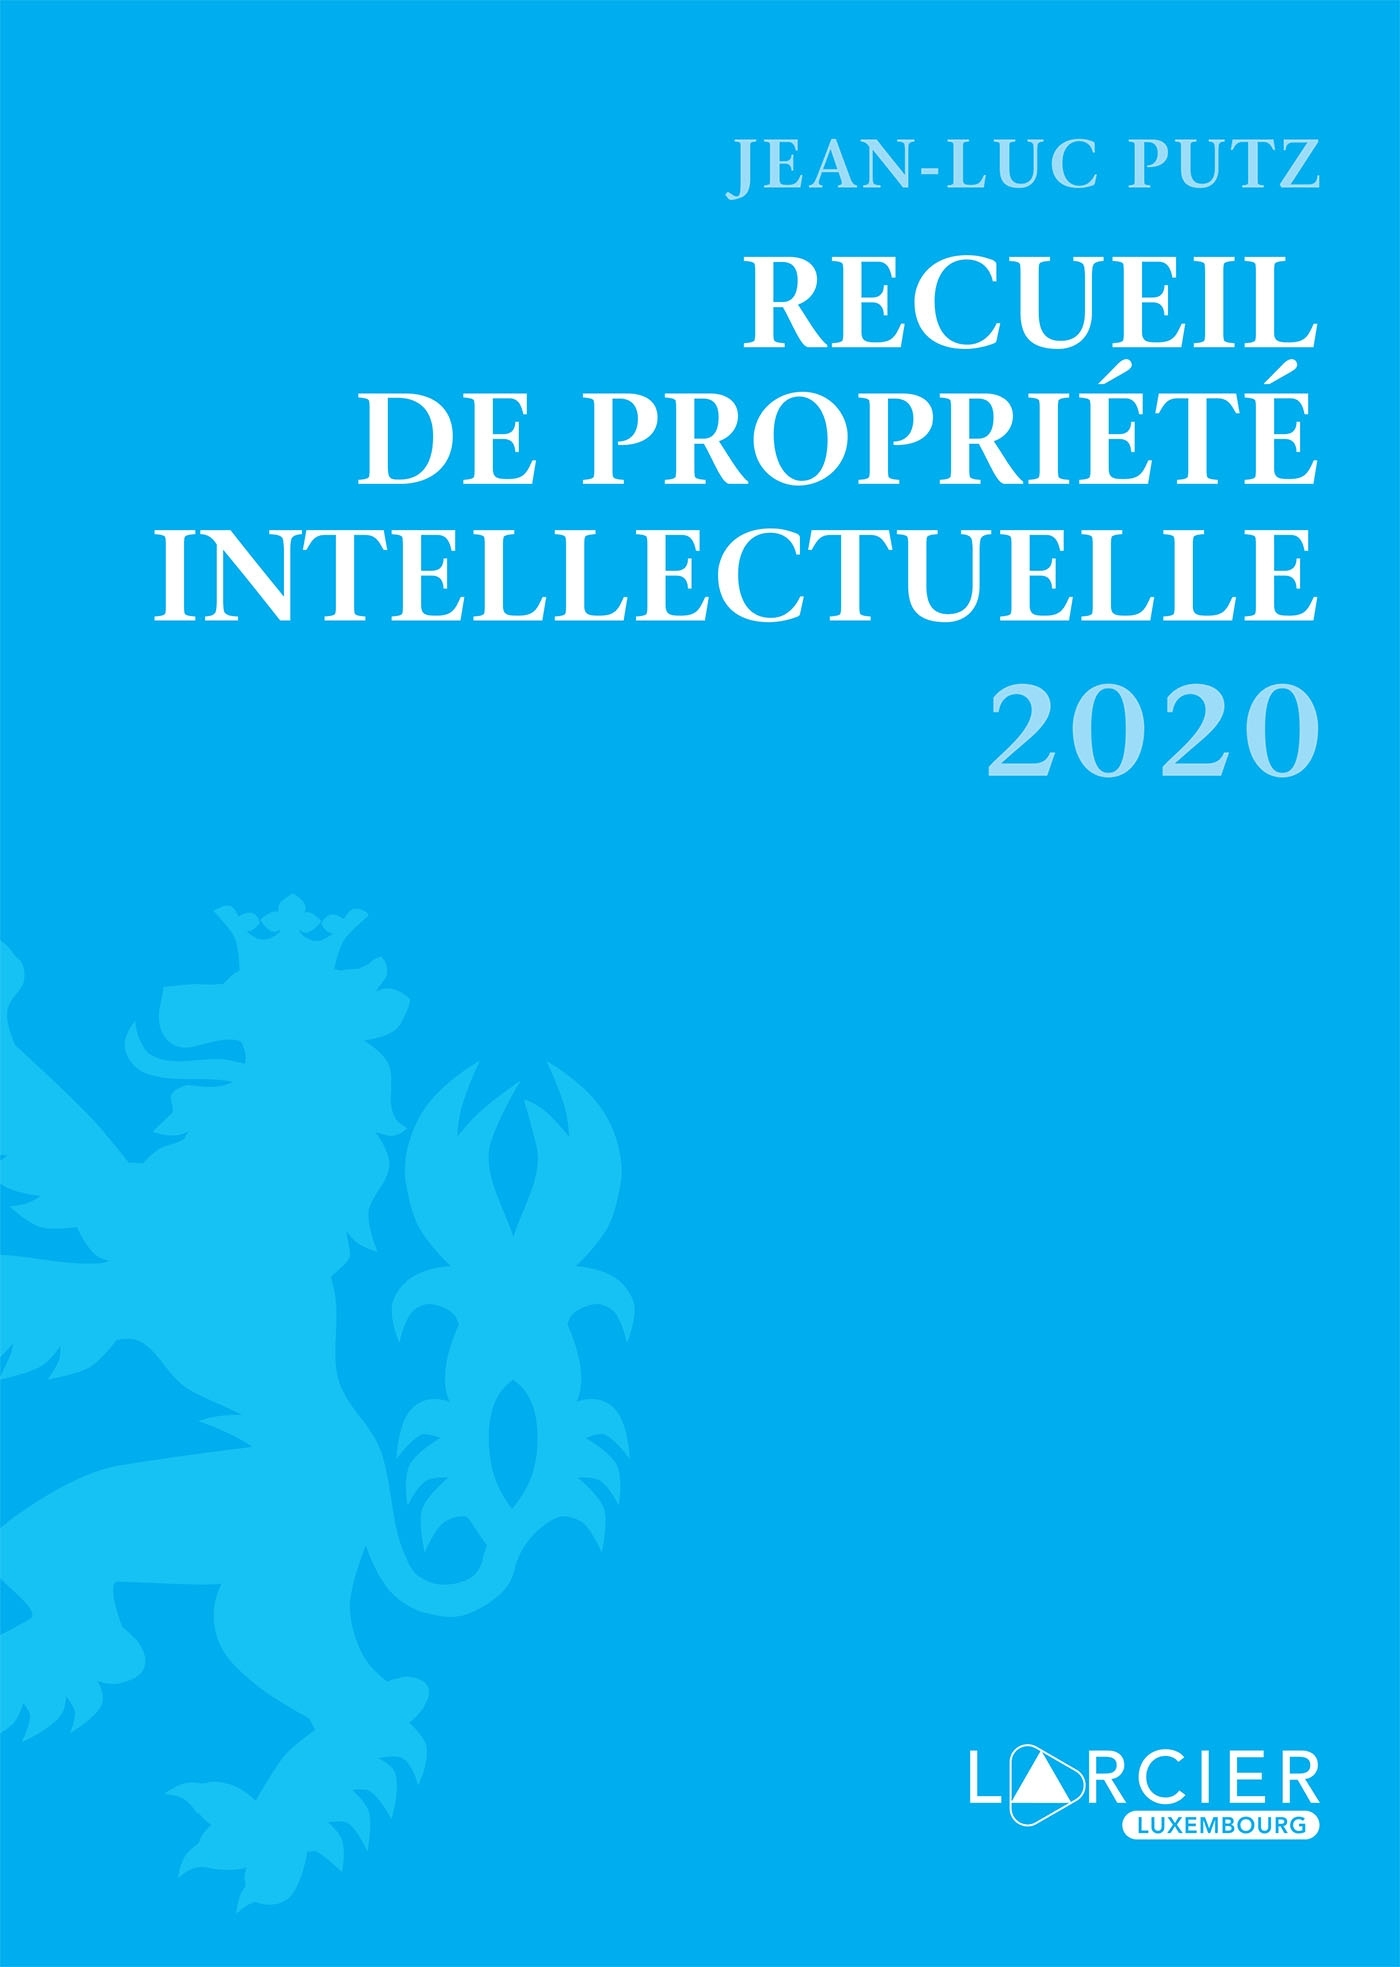 RECUEIL DE PROPRIETE INTELLECTUELLE - 2020